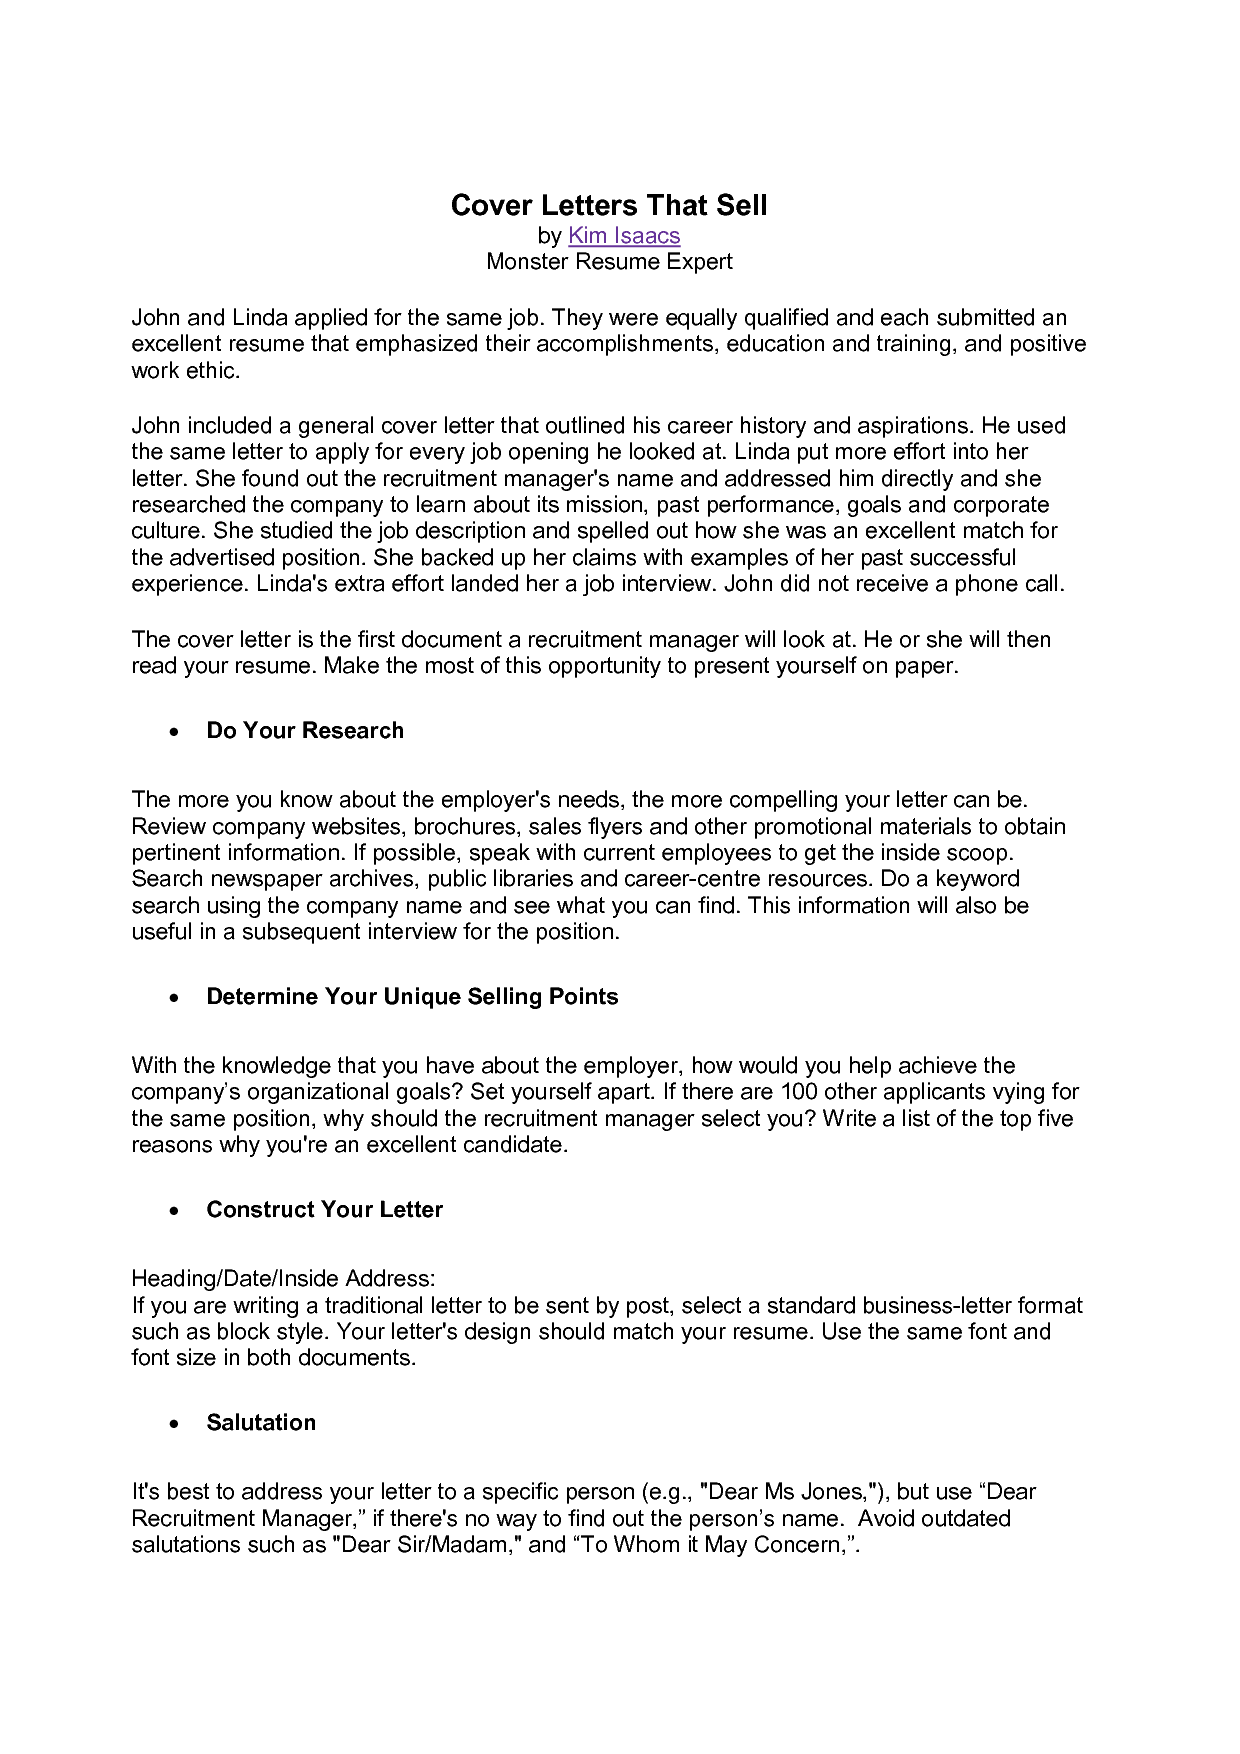 monster cover letter free download monster cover letter monster cover letter template monster cover. Resume Example. Resume CV Cover Letter